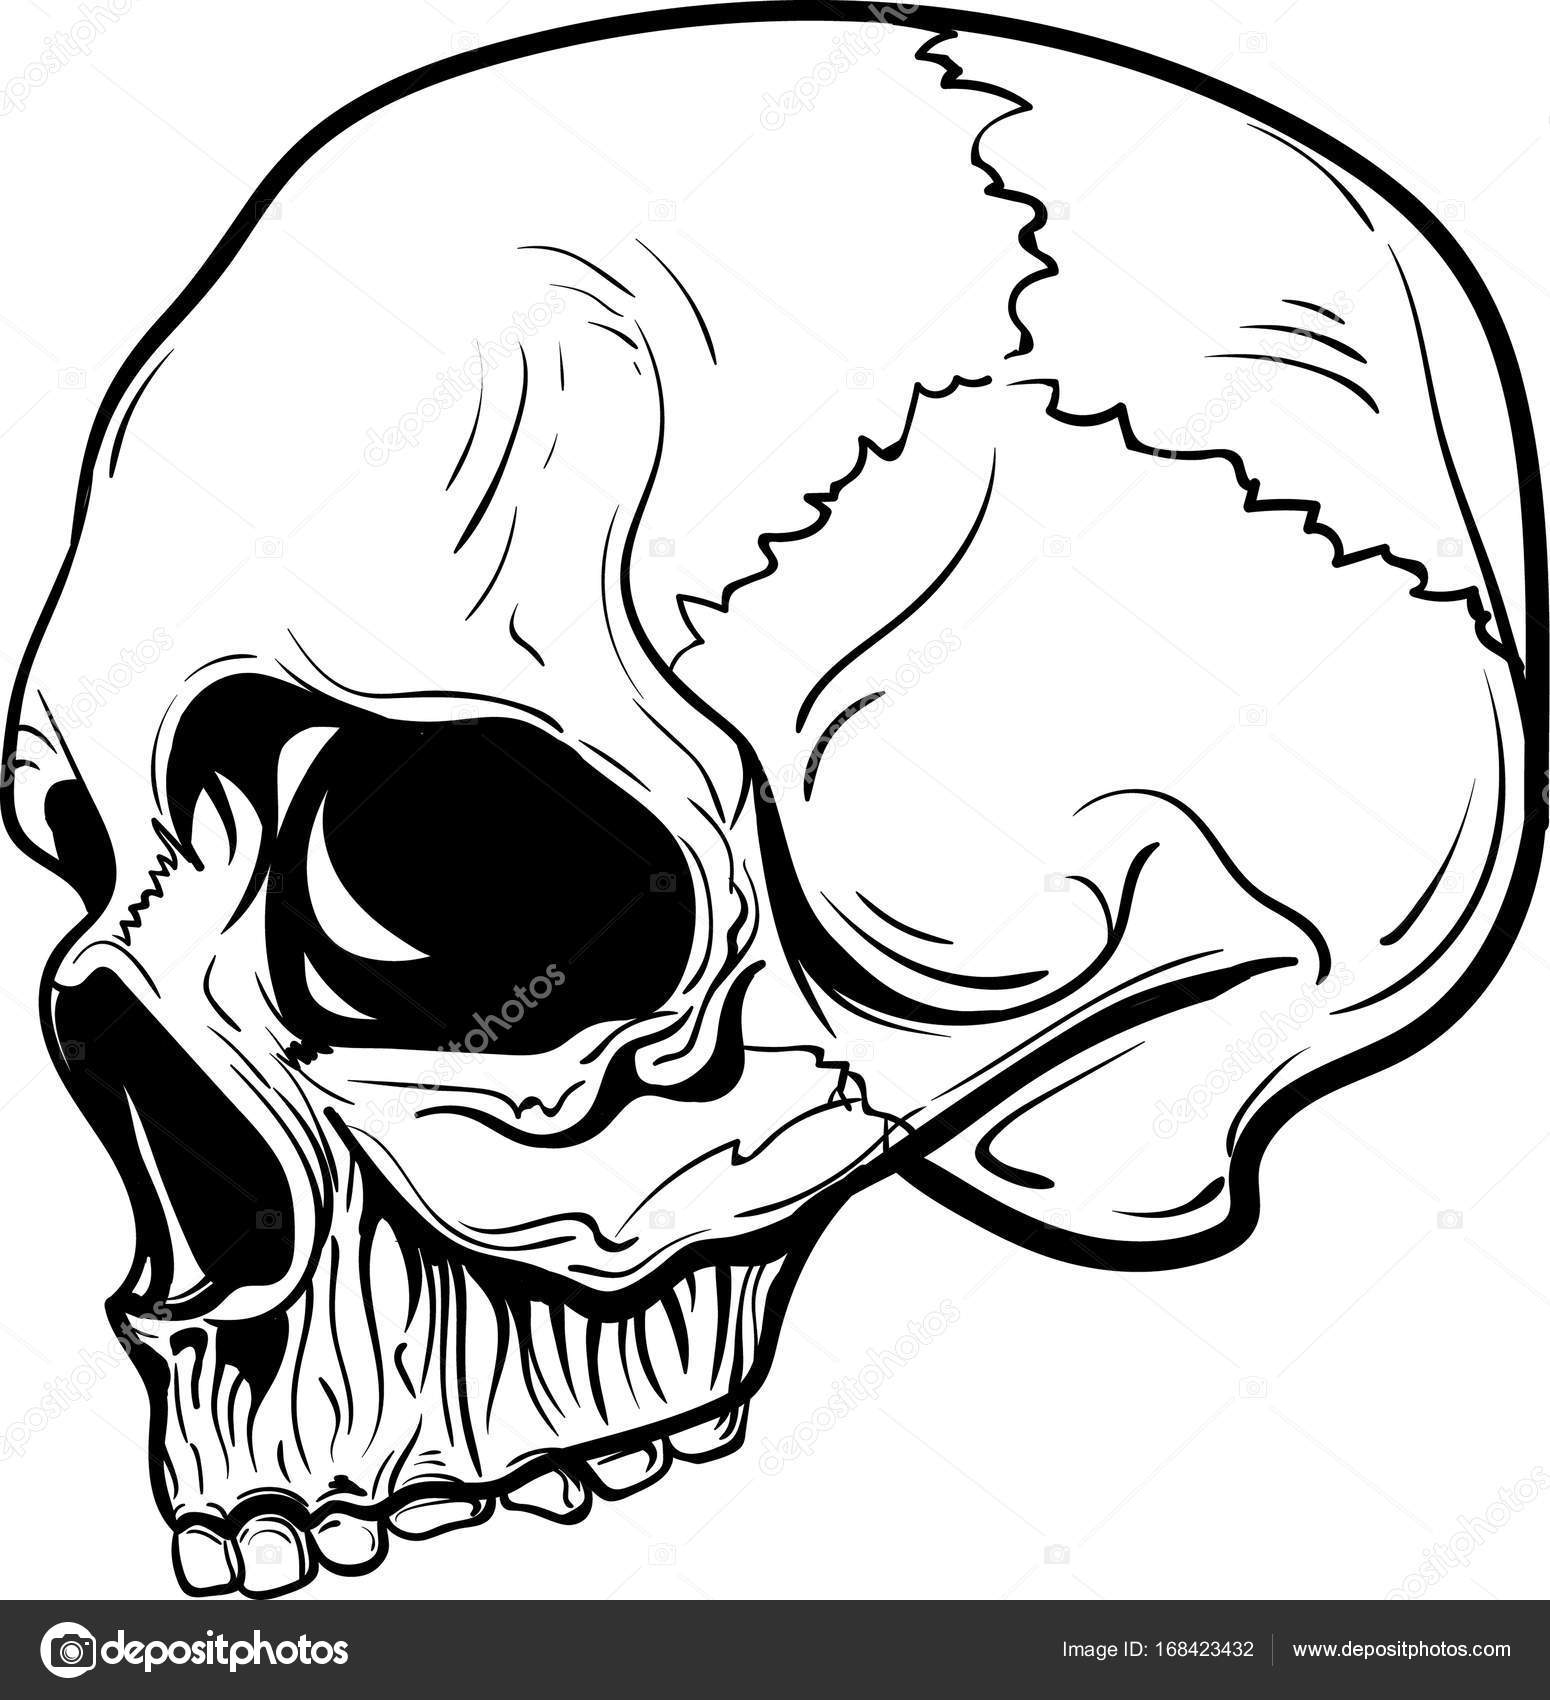 1550x1700 Hand Drawn Anatomy Skull Vector Stock Vector K Ssss